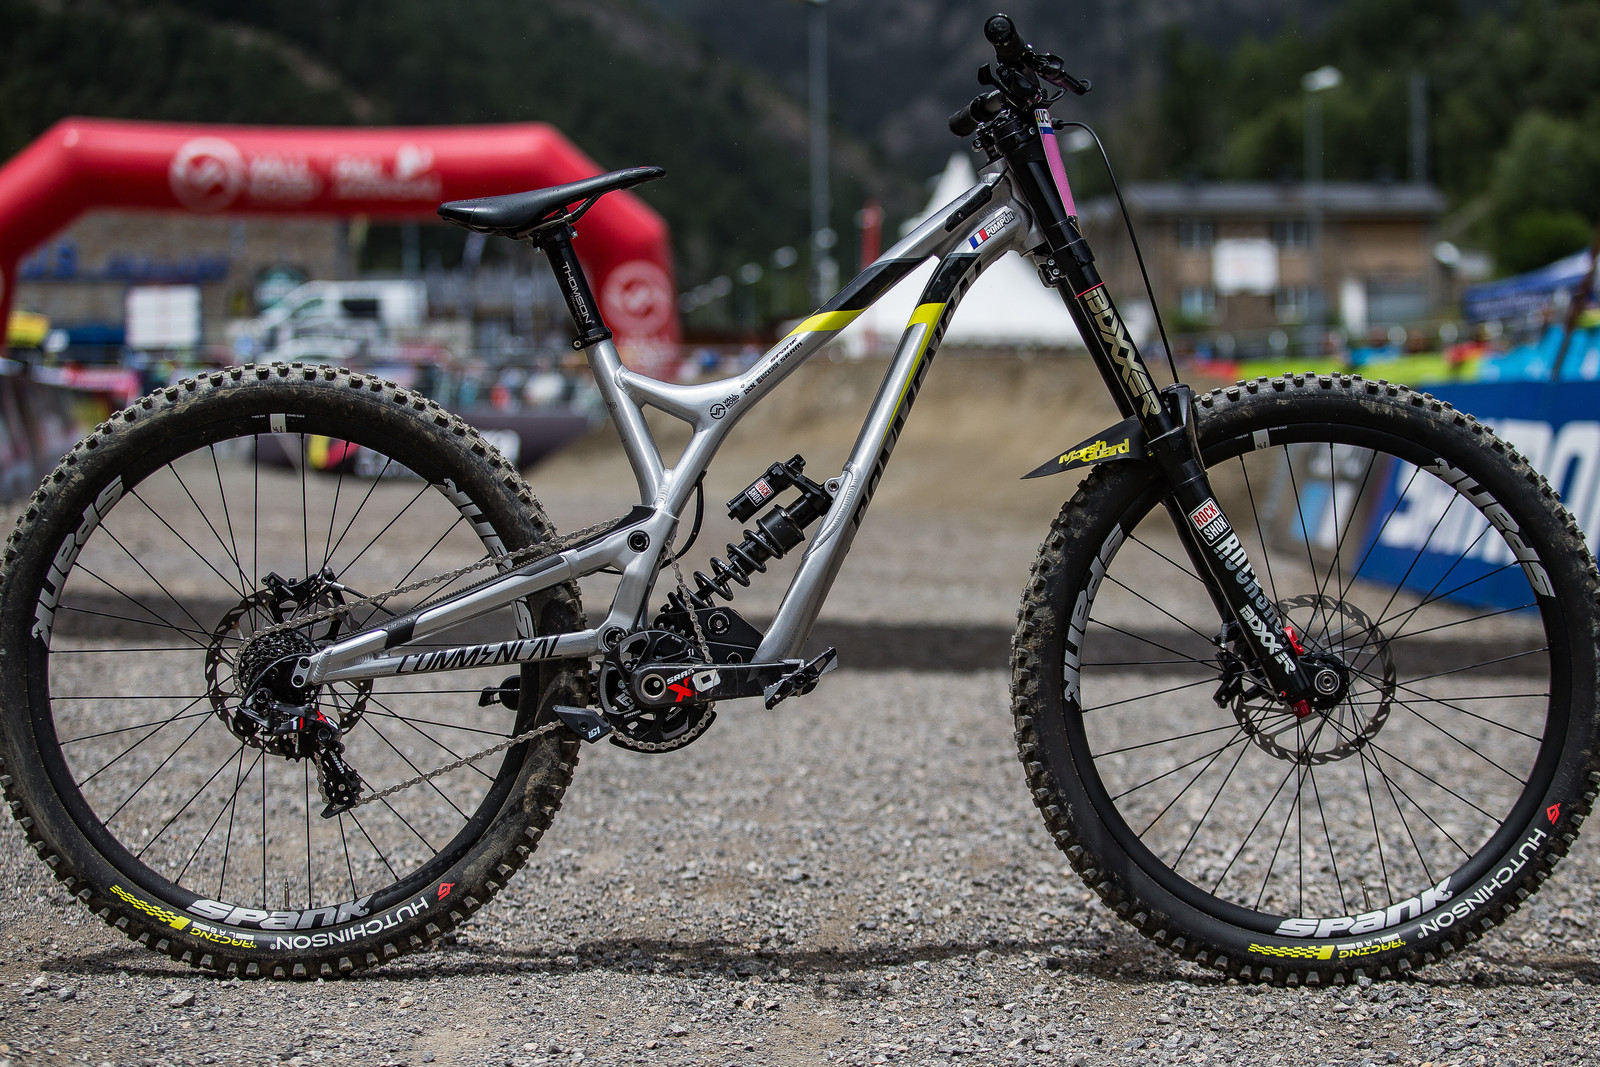 WINNING BIKE: Myriam Nicole's Commencal Supreme DH V4 - WINNING BIKE: Myriam Nicole's Commencal Supreme DH V4 - Mountain Biking Pictures - Vital MTB